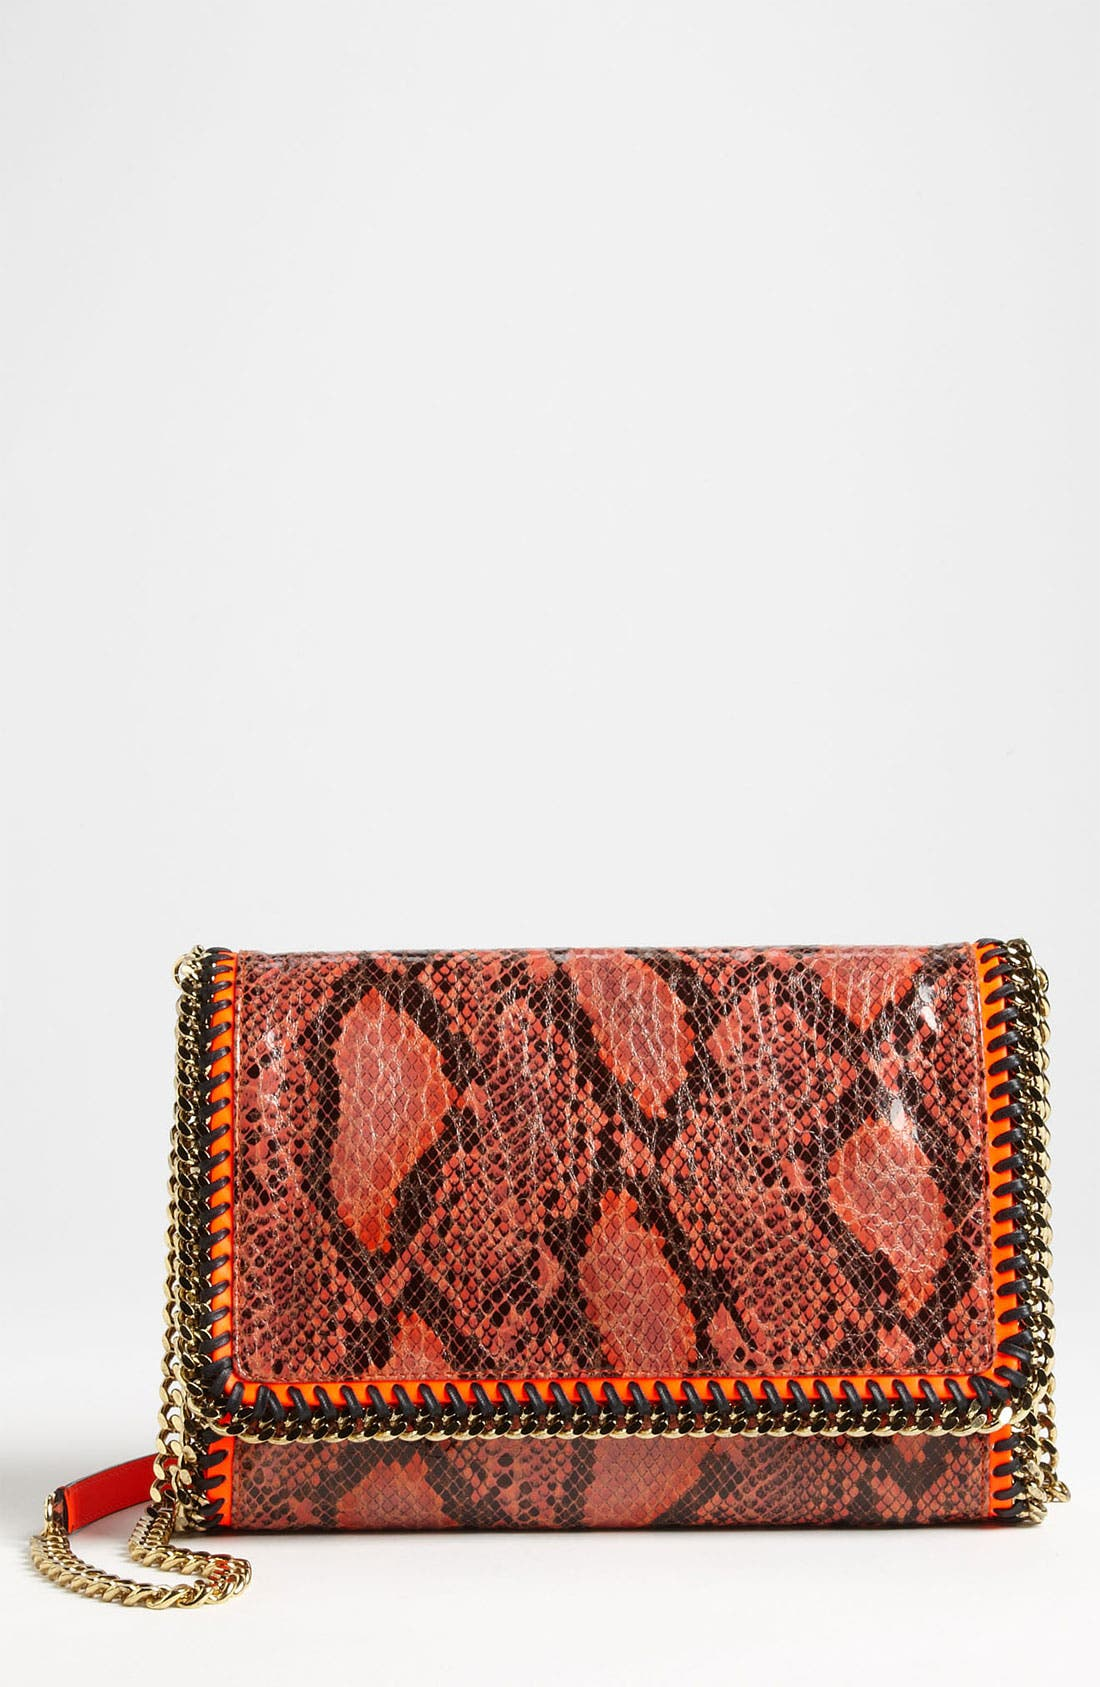 Main Image - Stella McCartney 'Falabella' Faux Python Crossbody Bag